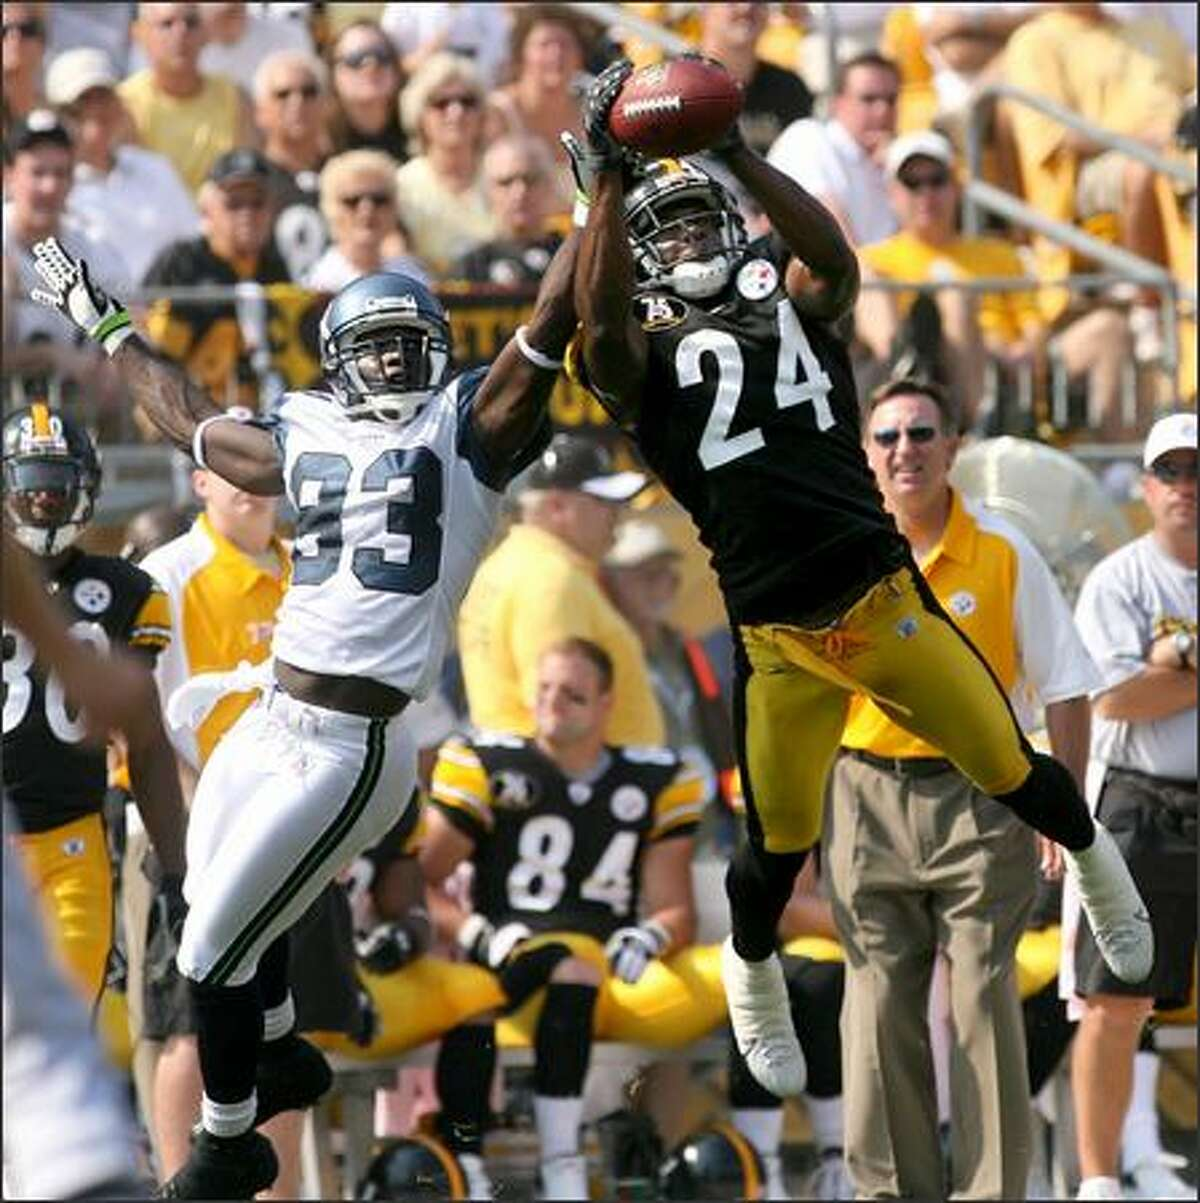 Steelers cornerback Ike Taylor steps in front of Deion Branch in the first quarter, but can't hold onto the ball for the interception.